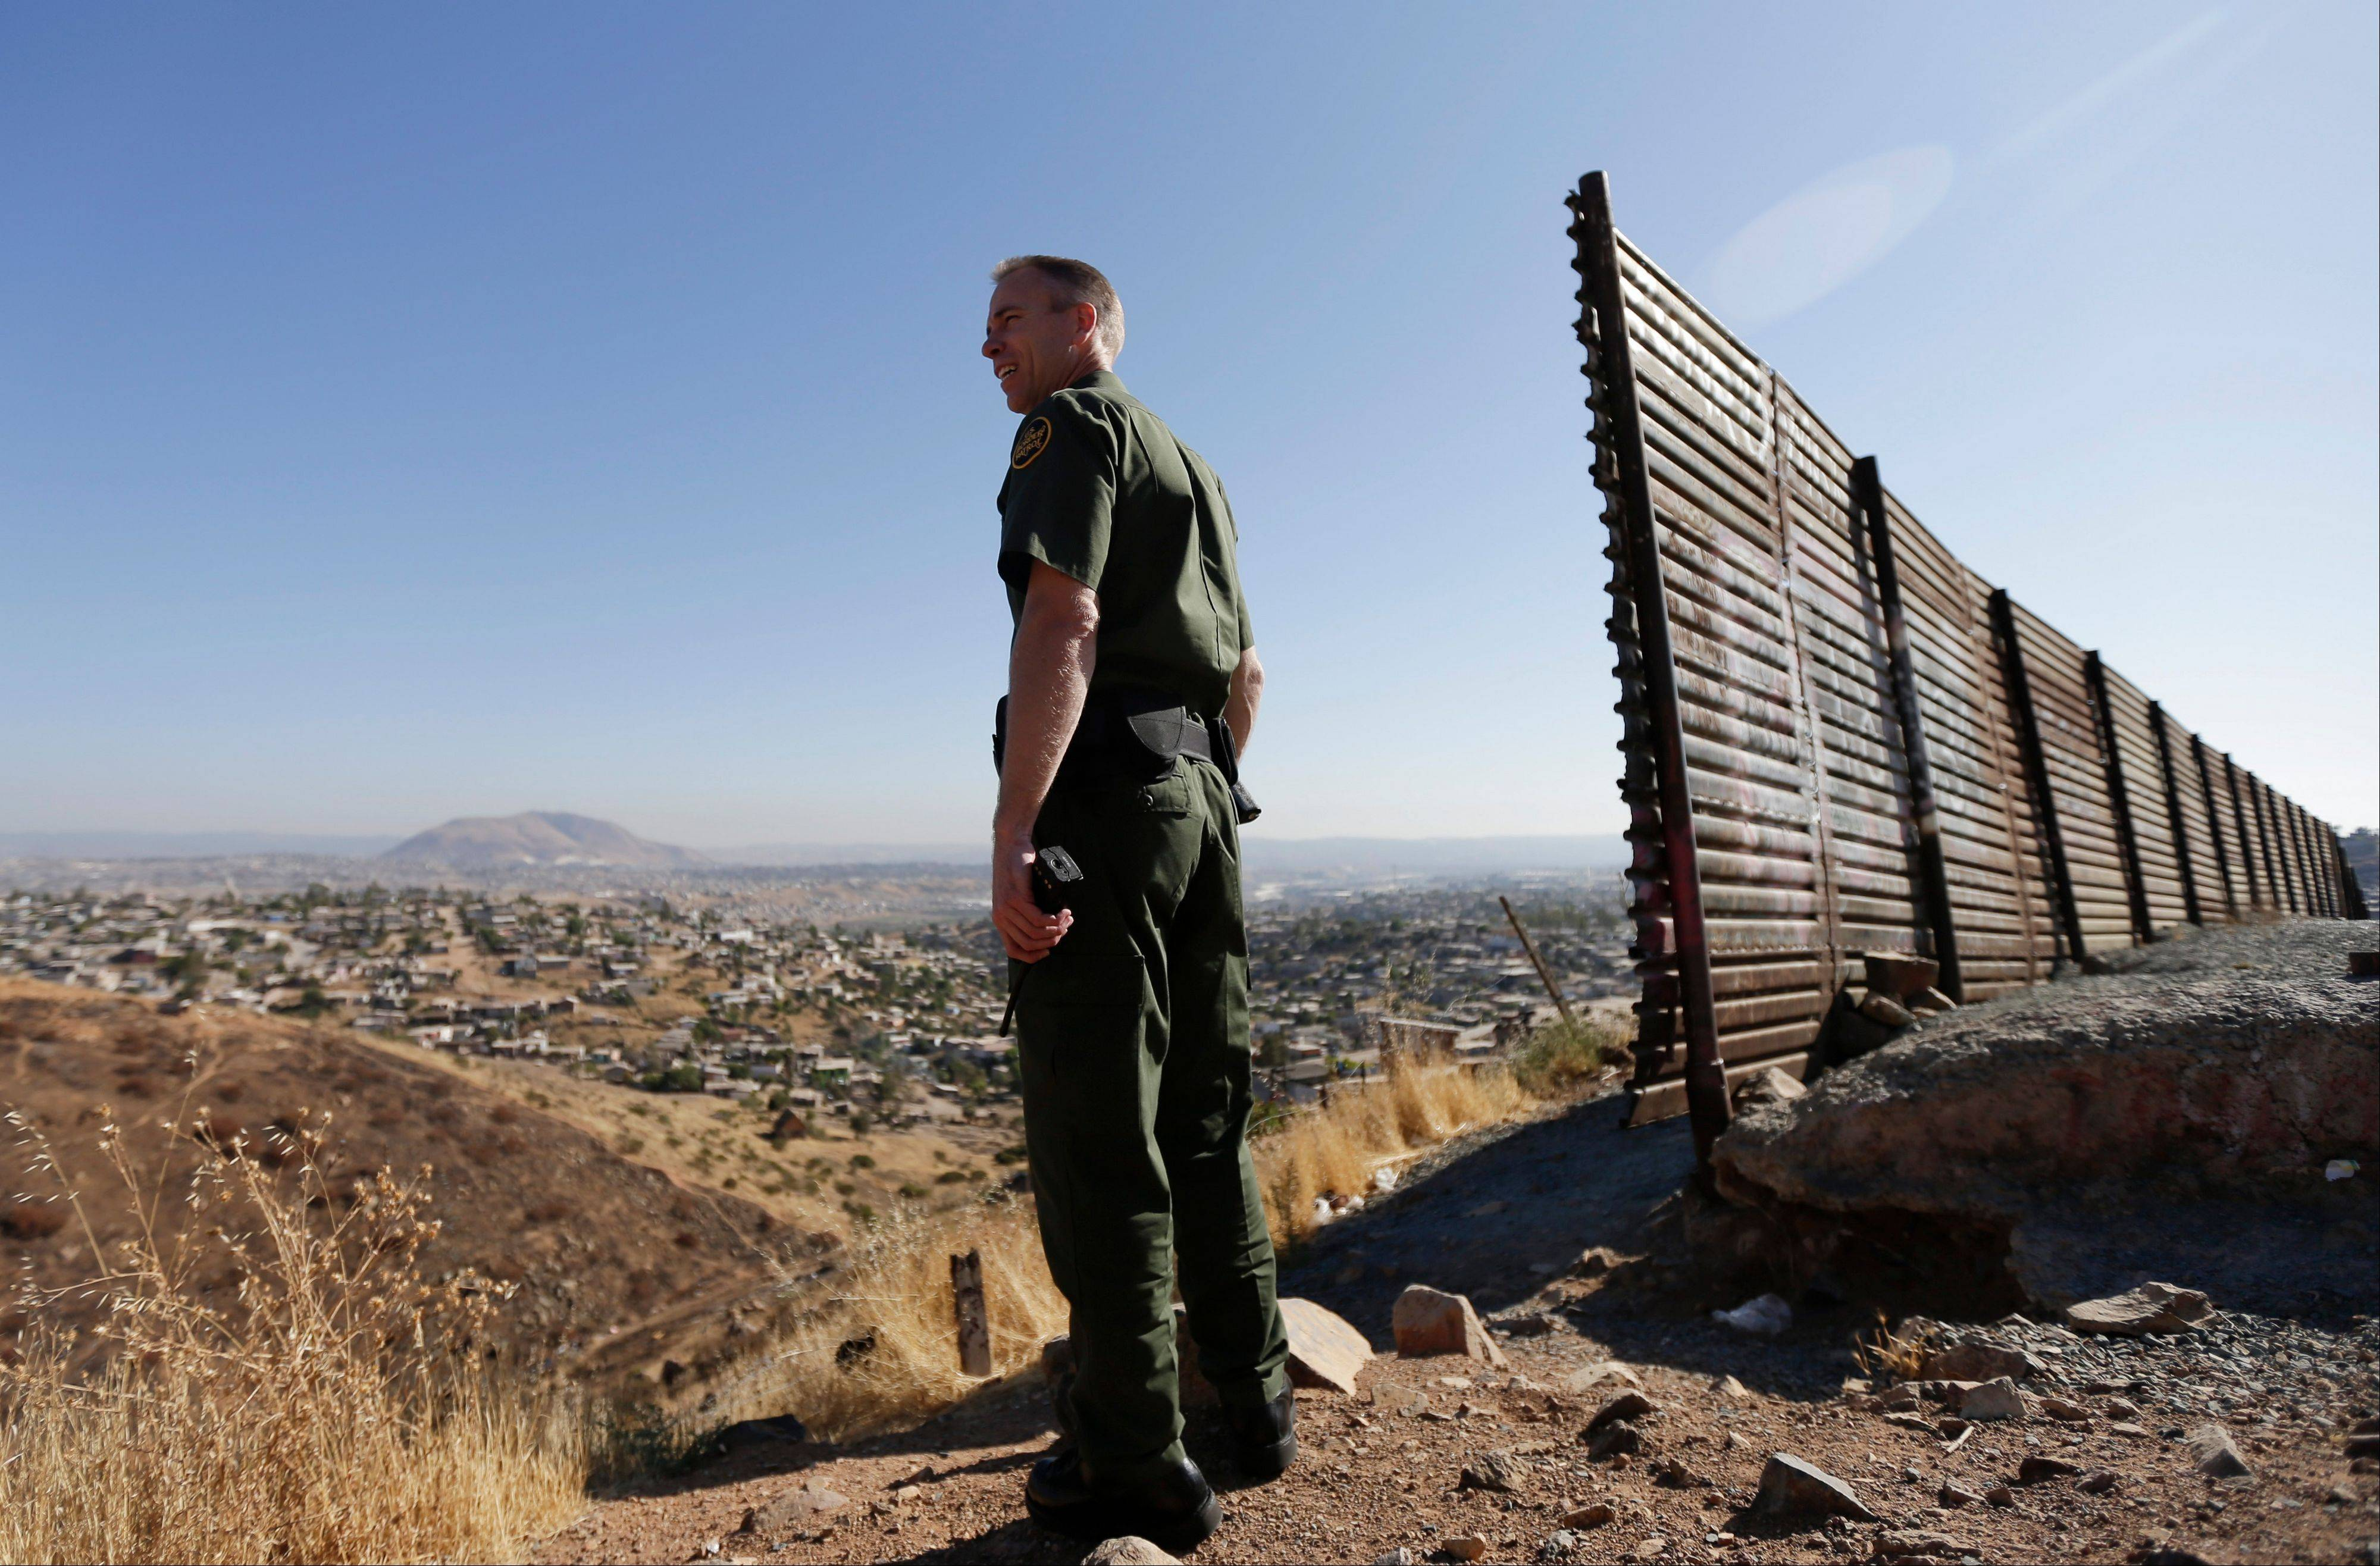 Associated Press In this June 13, 2013 file photo, US Border Patrol agent Jerry Conlin looks out over Tijuana, Mexico, behind, along the old border wall along the US - Mexico border, where it ends at the base of a hill in San Diego. After dropping during the recession, the number of immigrants crossing the border illegally into the U.S. appears to be on the rise again, according to a report released Monday, Sept. 23, 2013 by Pew Research Center�s Hispanic Trends Project.